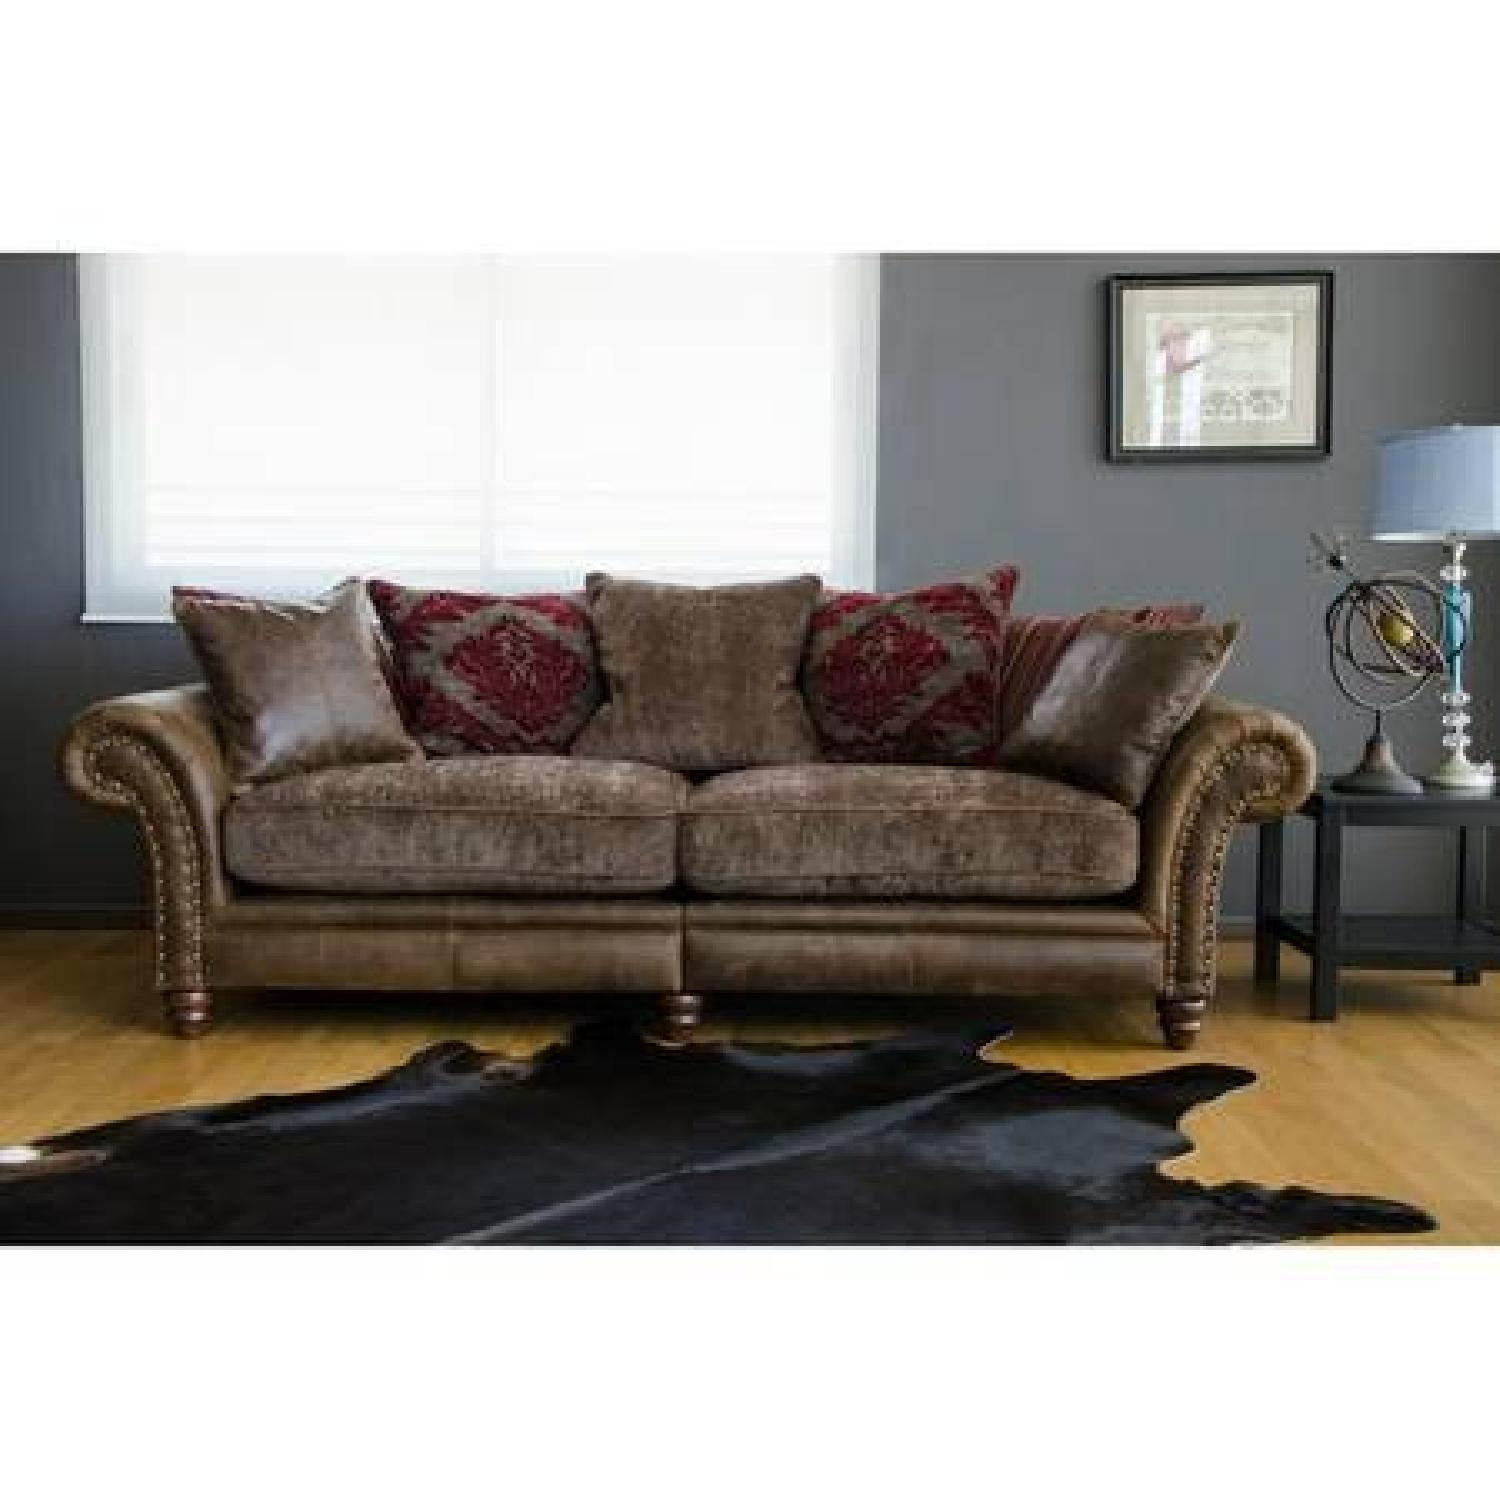 Victorian-Inspired Leather Sofa - image-1